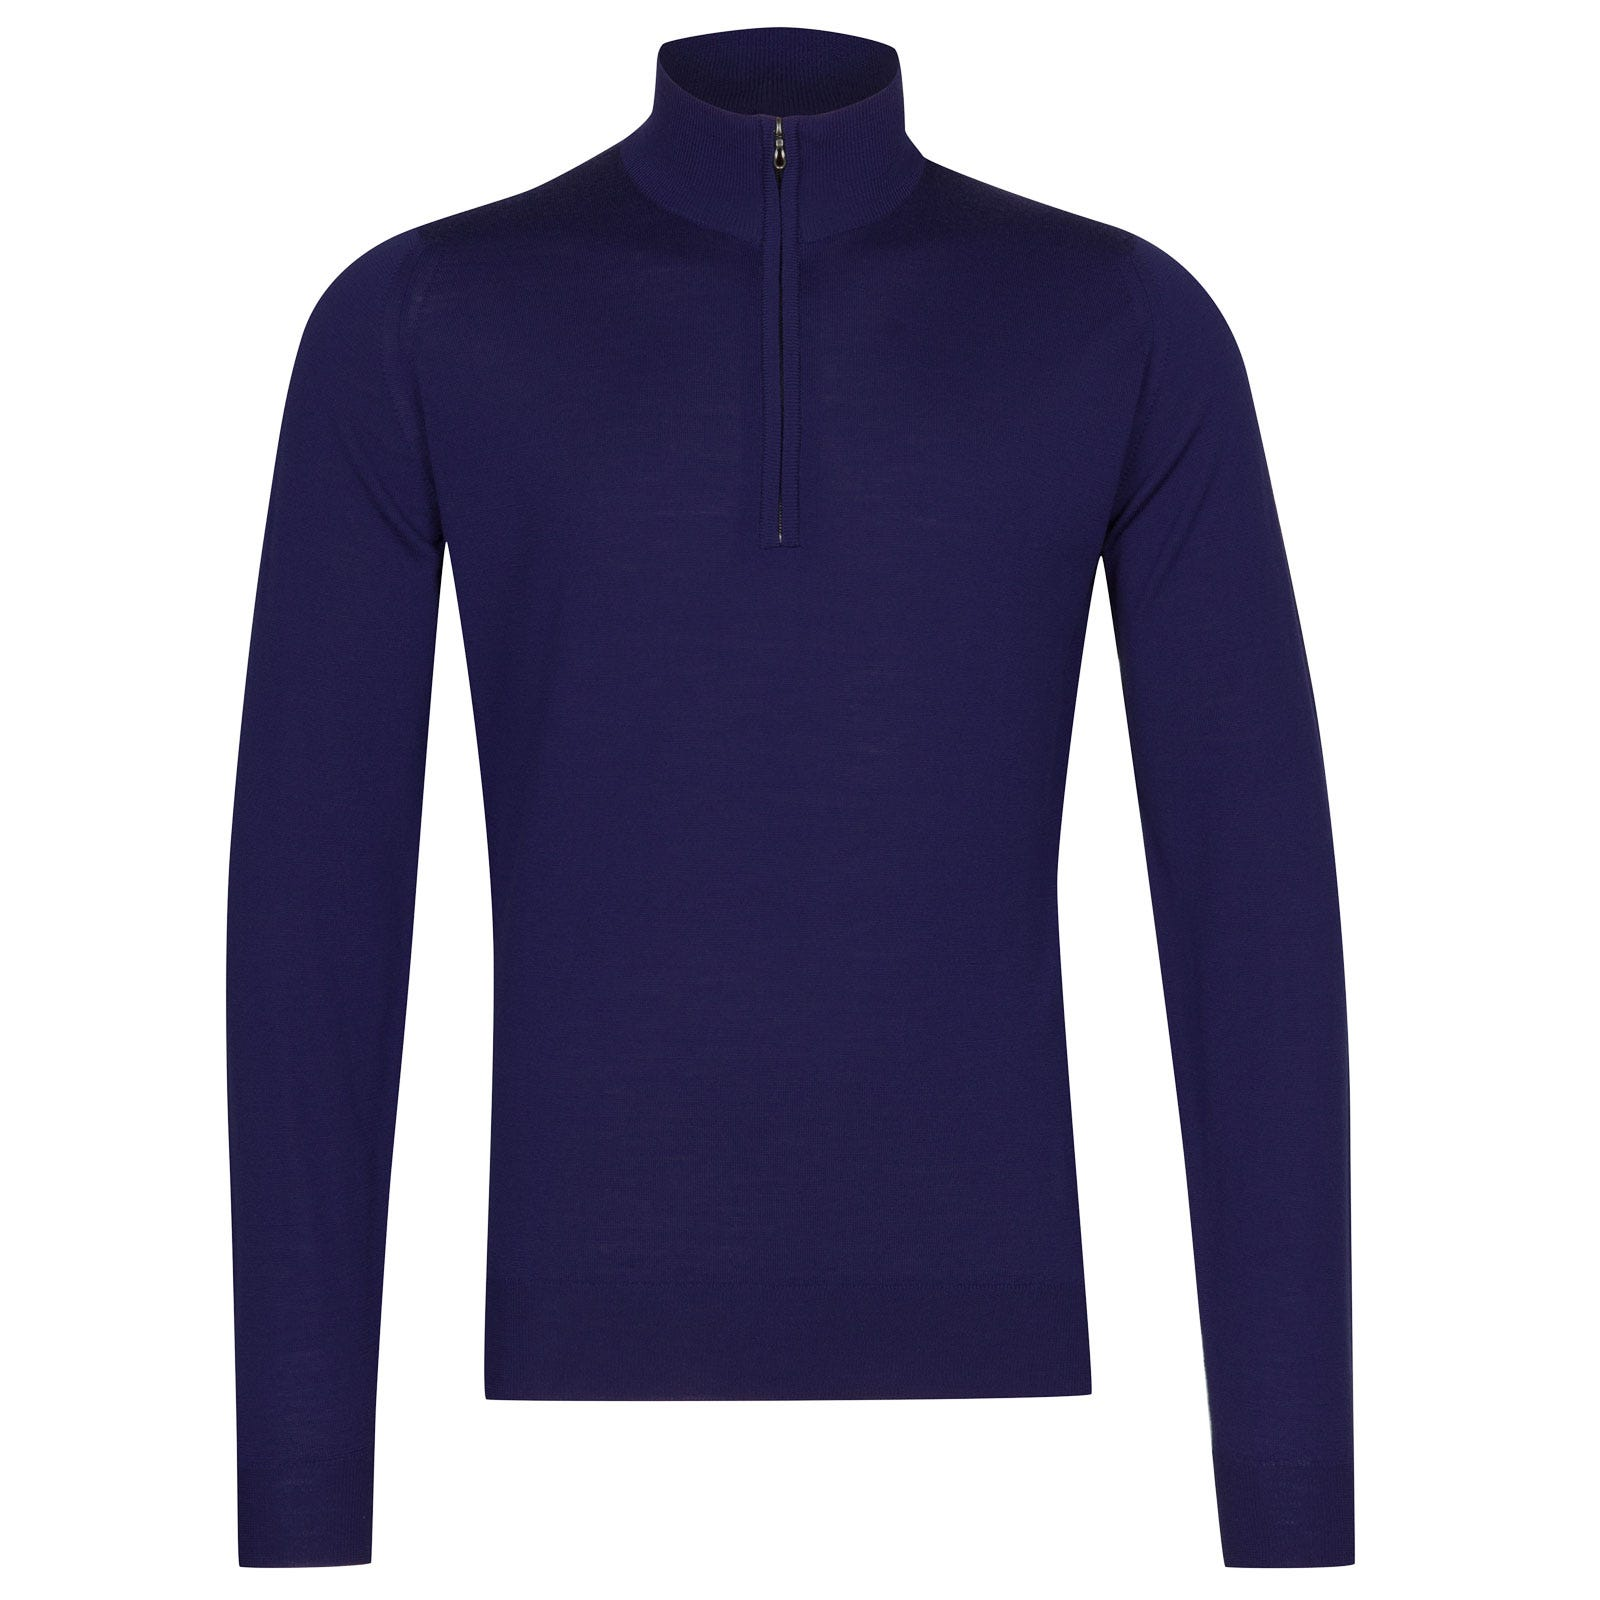 John Smedley Barrow Merino Wool Pullover in Serge Blue-M